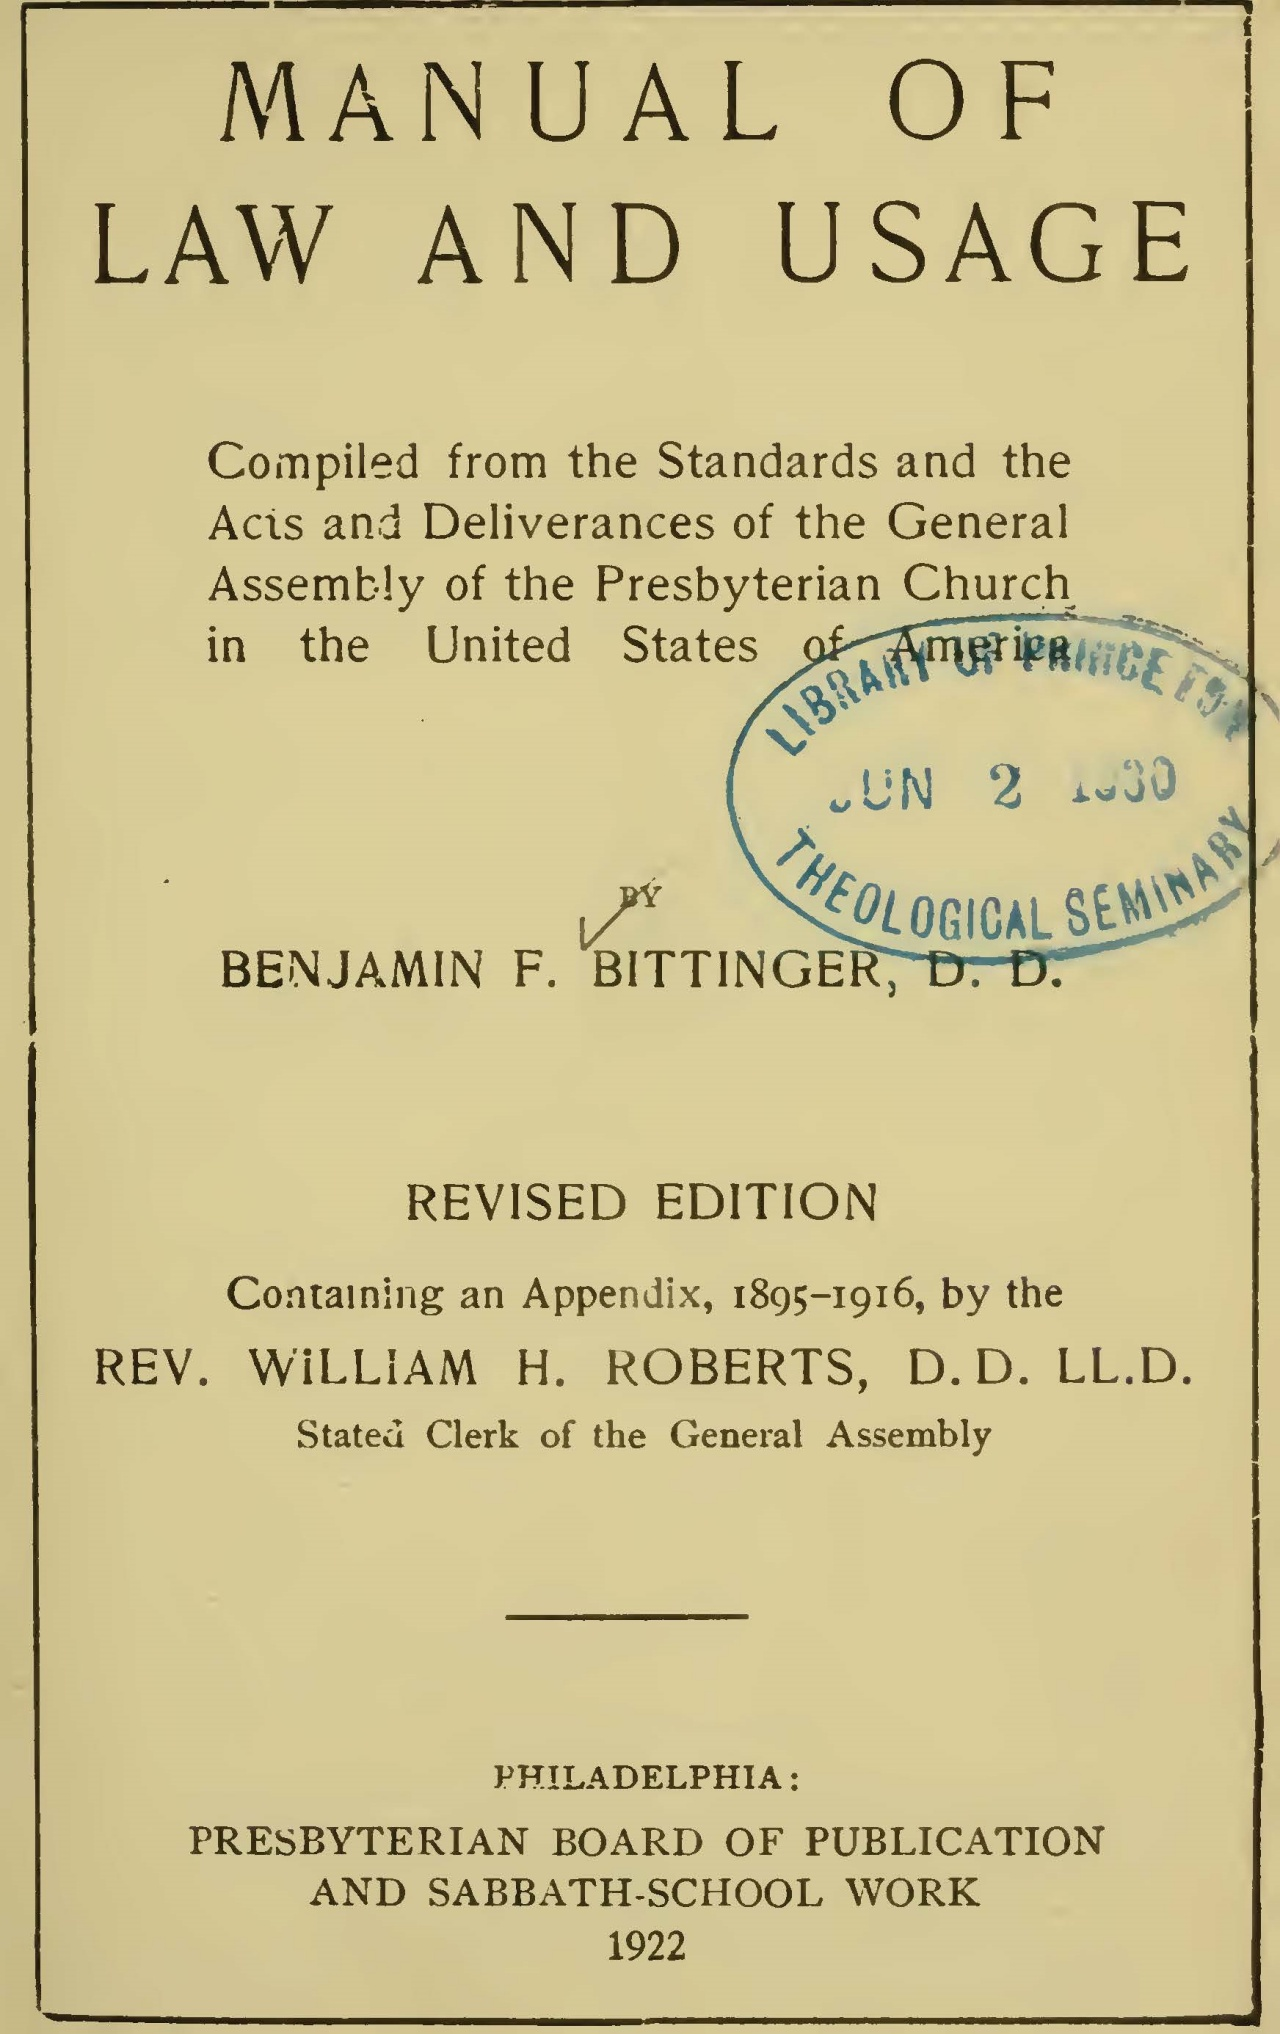 Bittinger, Benjamin Franklin, Manual of Law and Usage 1922 ed. Title Page.jpg